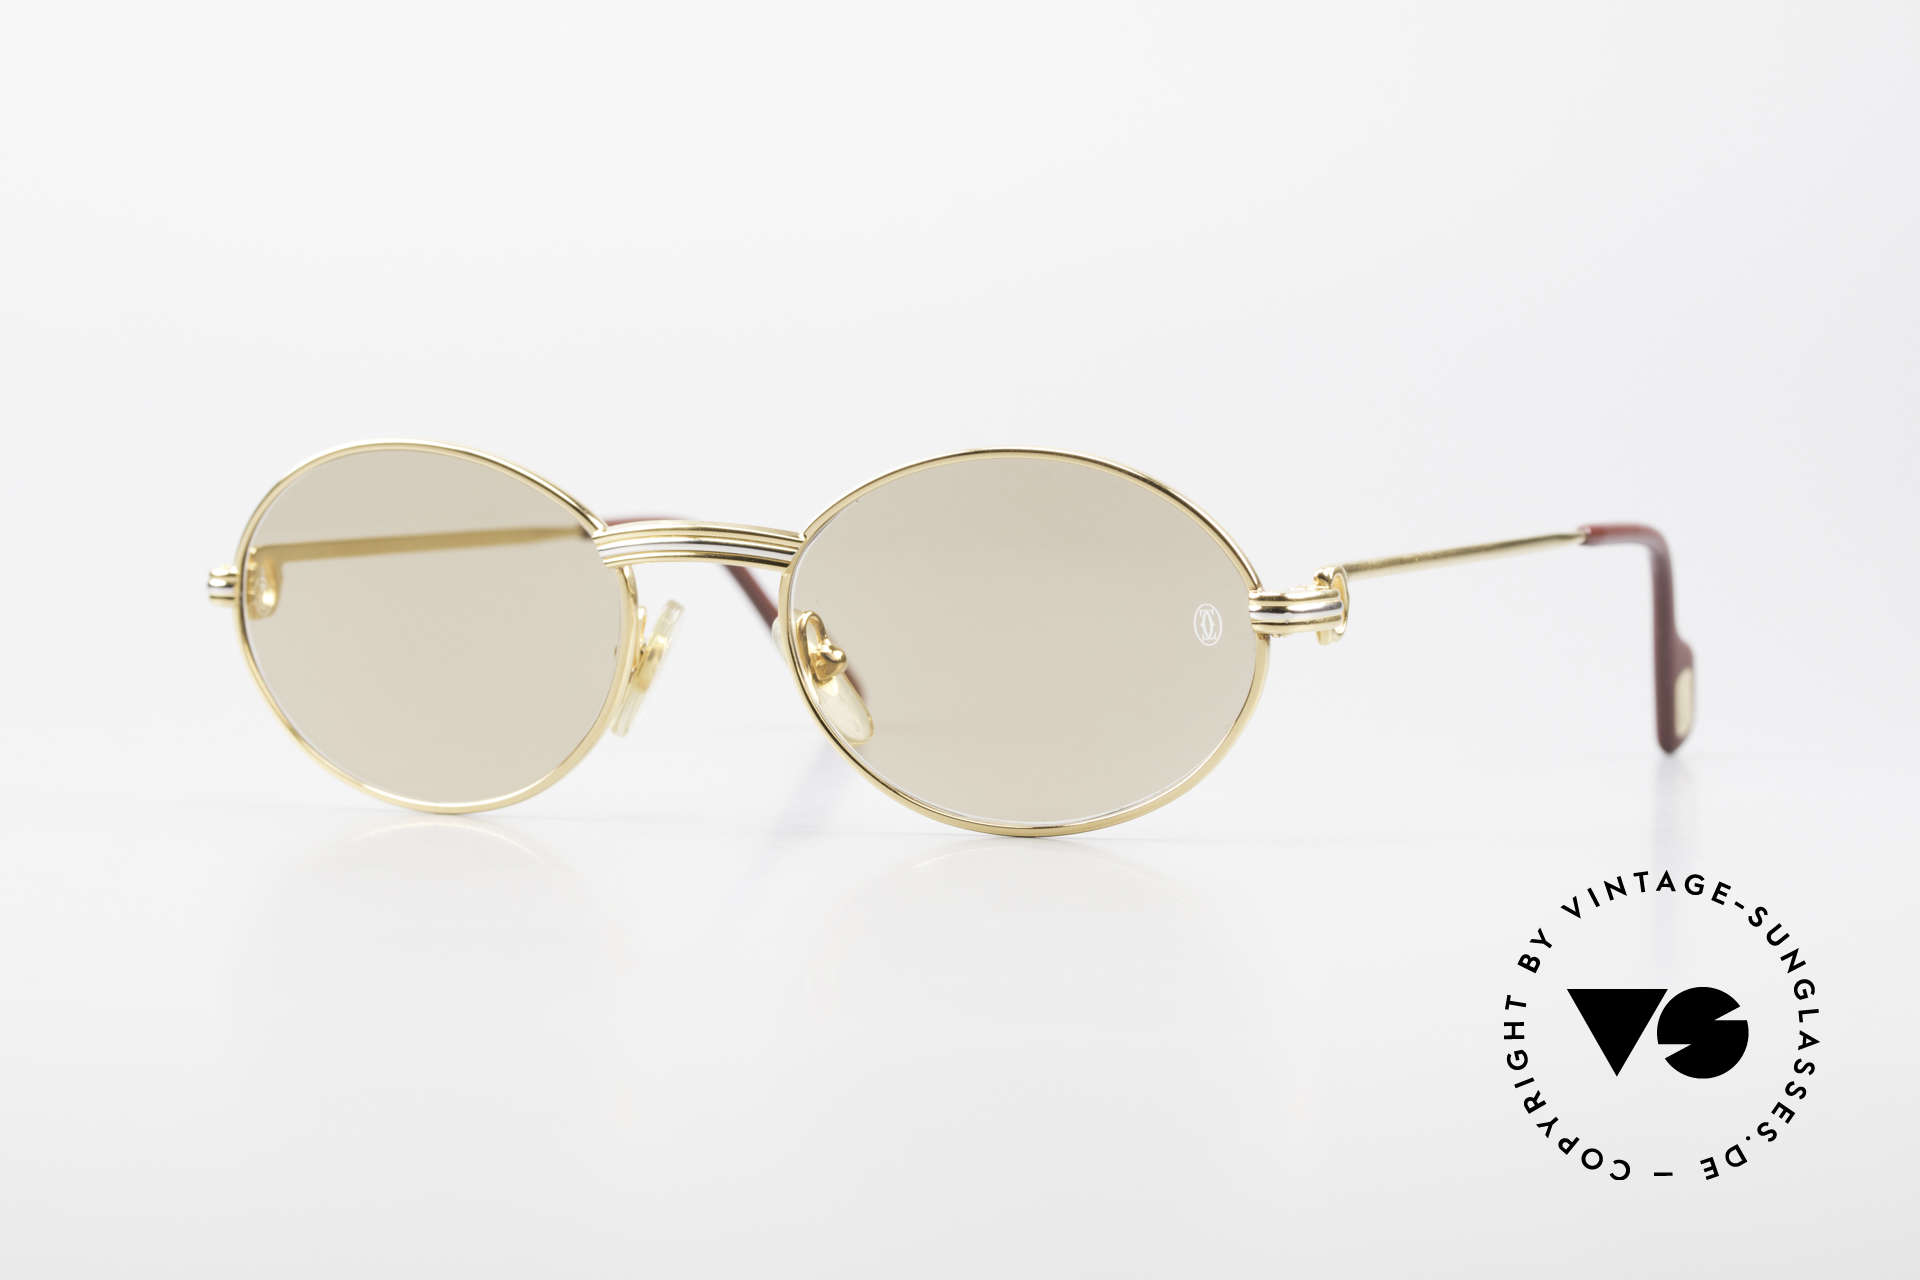 Cartier Saint Honore - S Oval 90's Luxury Sunglasses, small oval vintage CARTIER sunglasses from 1999, Made for Men and Women